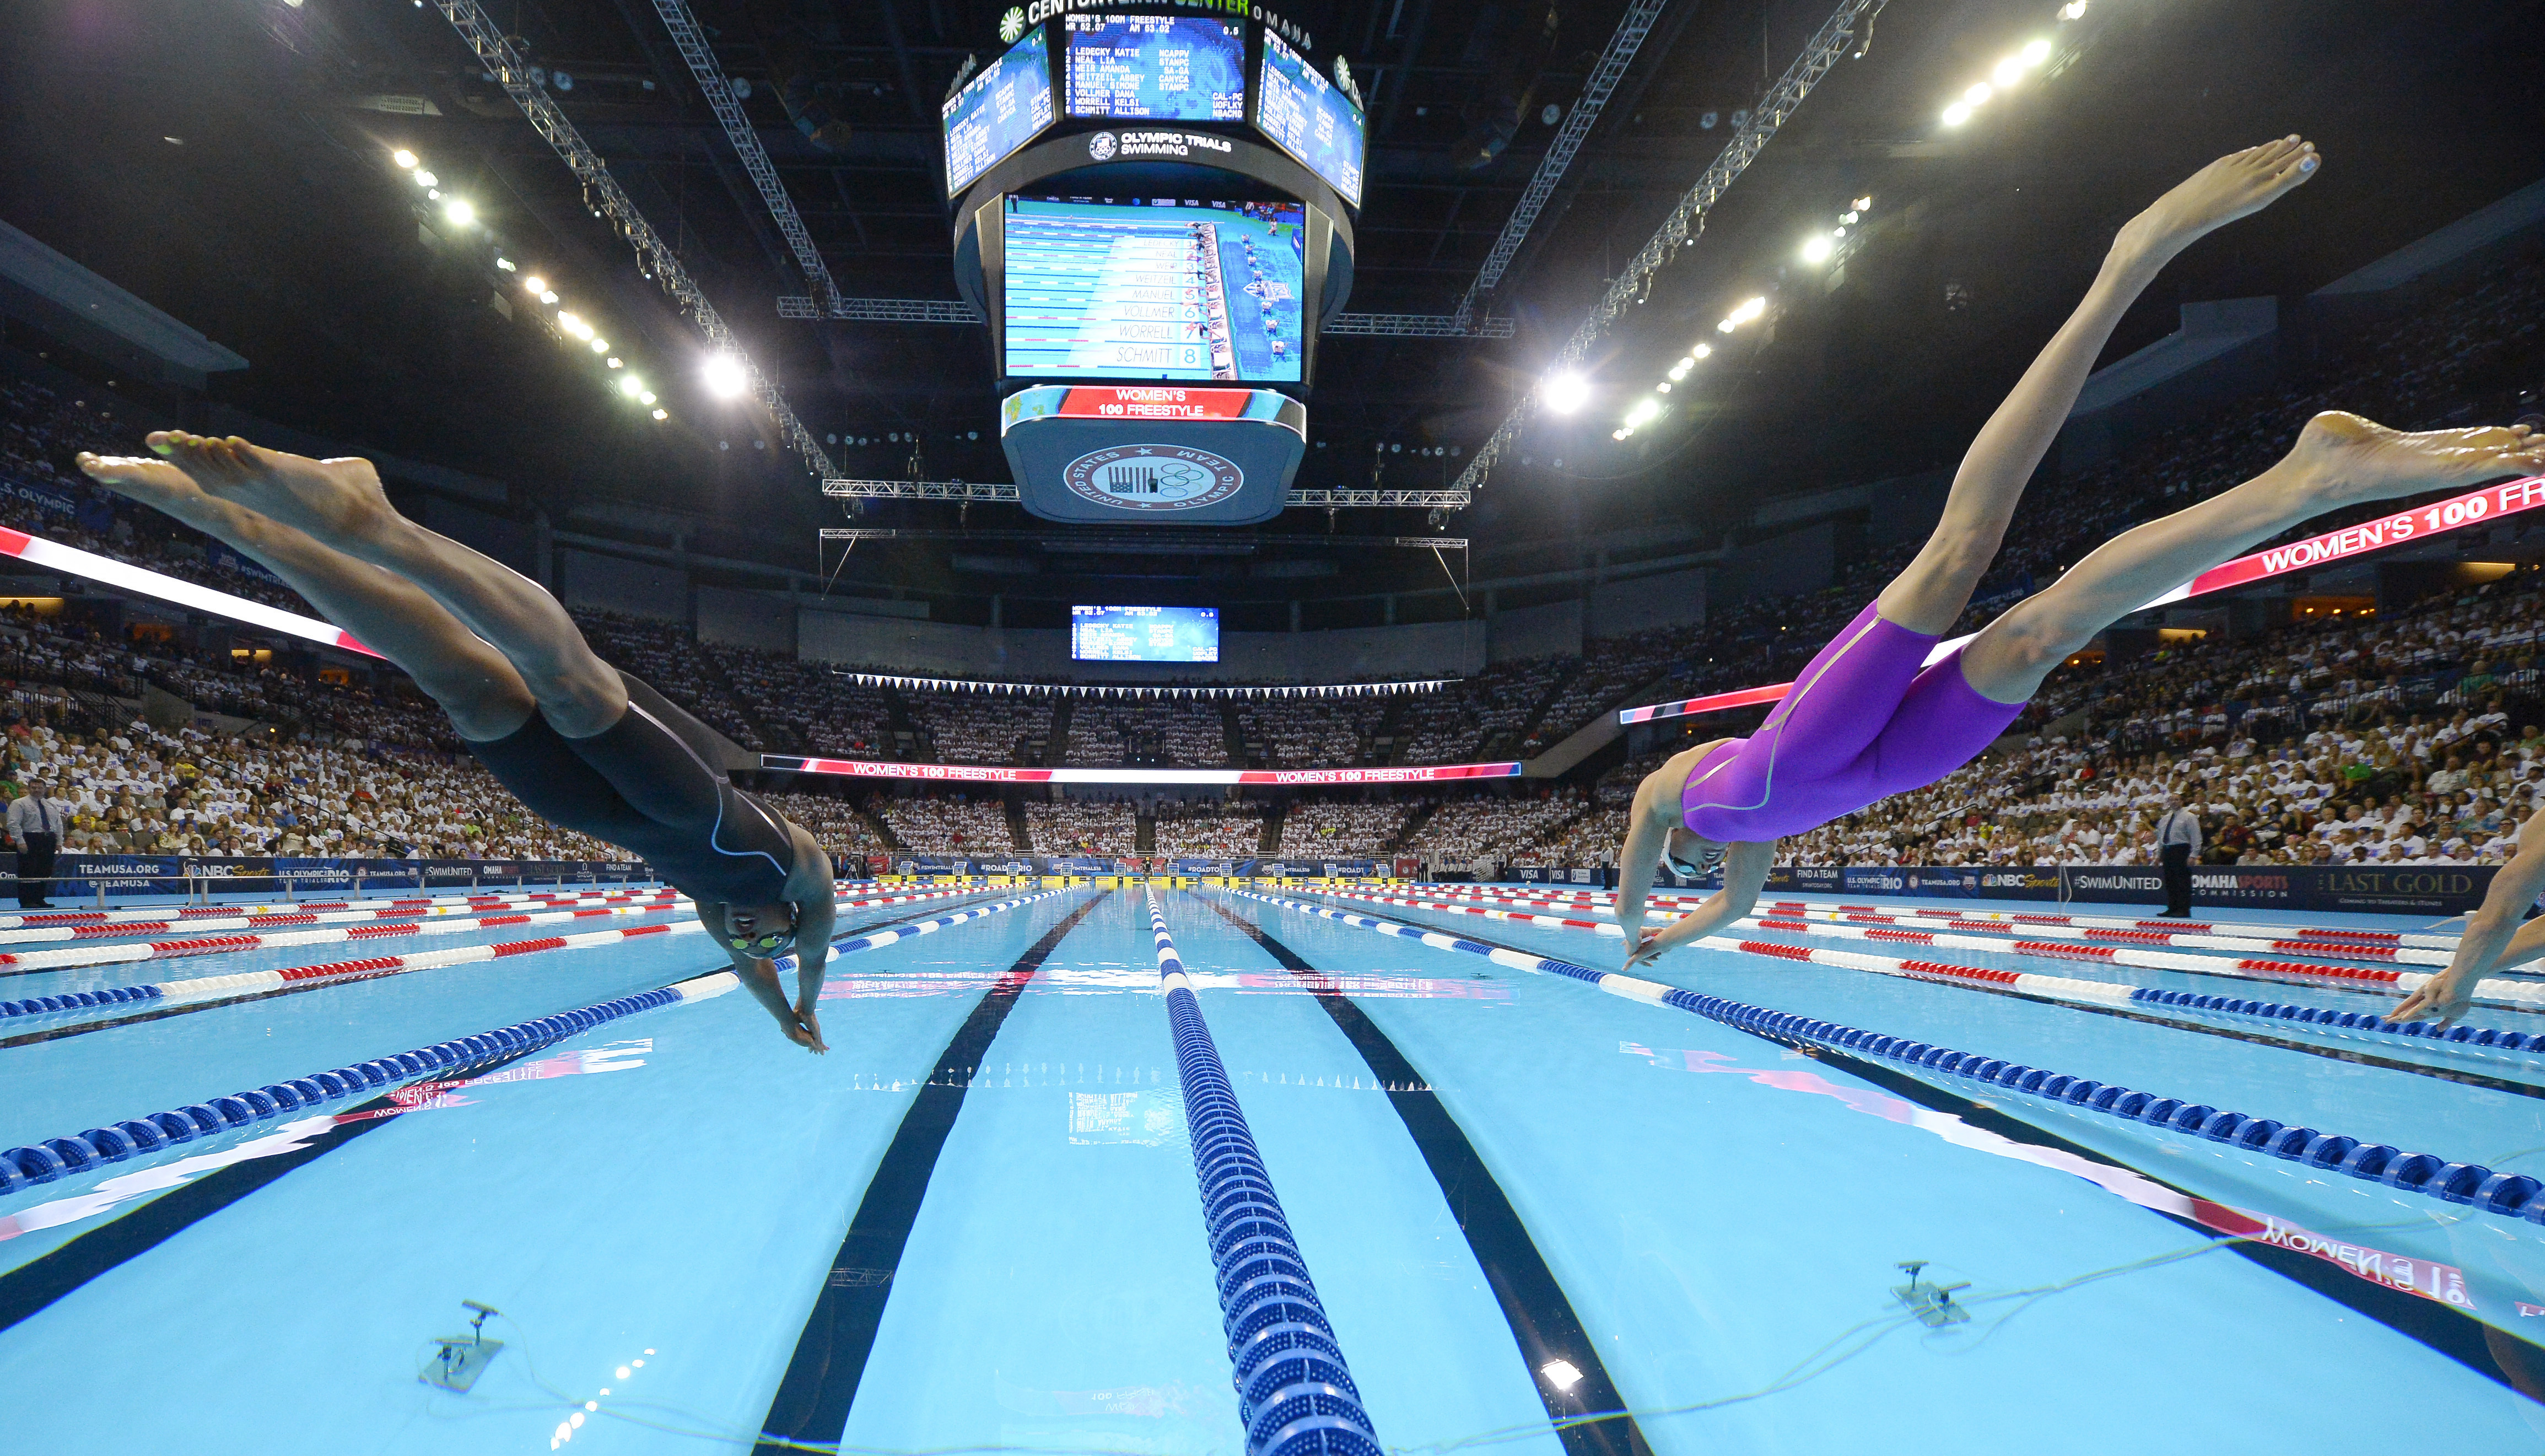 Simone Manuel, left, and Abbey Weitzeil start the women's 100-meter freestyle final at the U.S. Olympic swimming trials, Friday, July 1, 2016, in Omaha, Neb. (AP Photo/Mark J. Terrill)